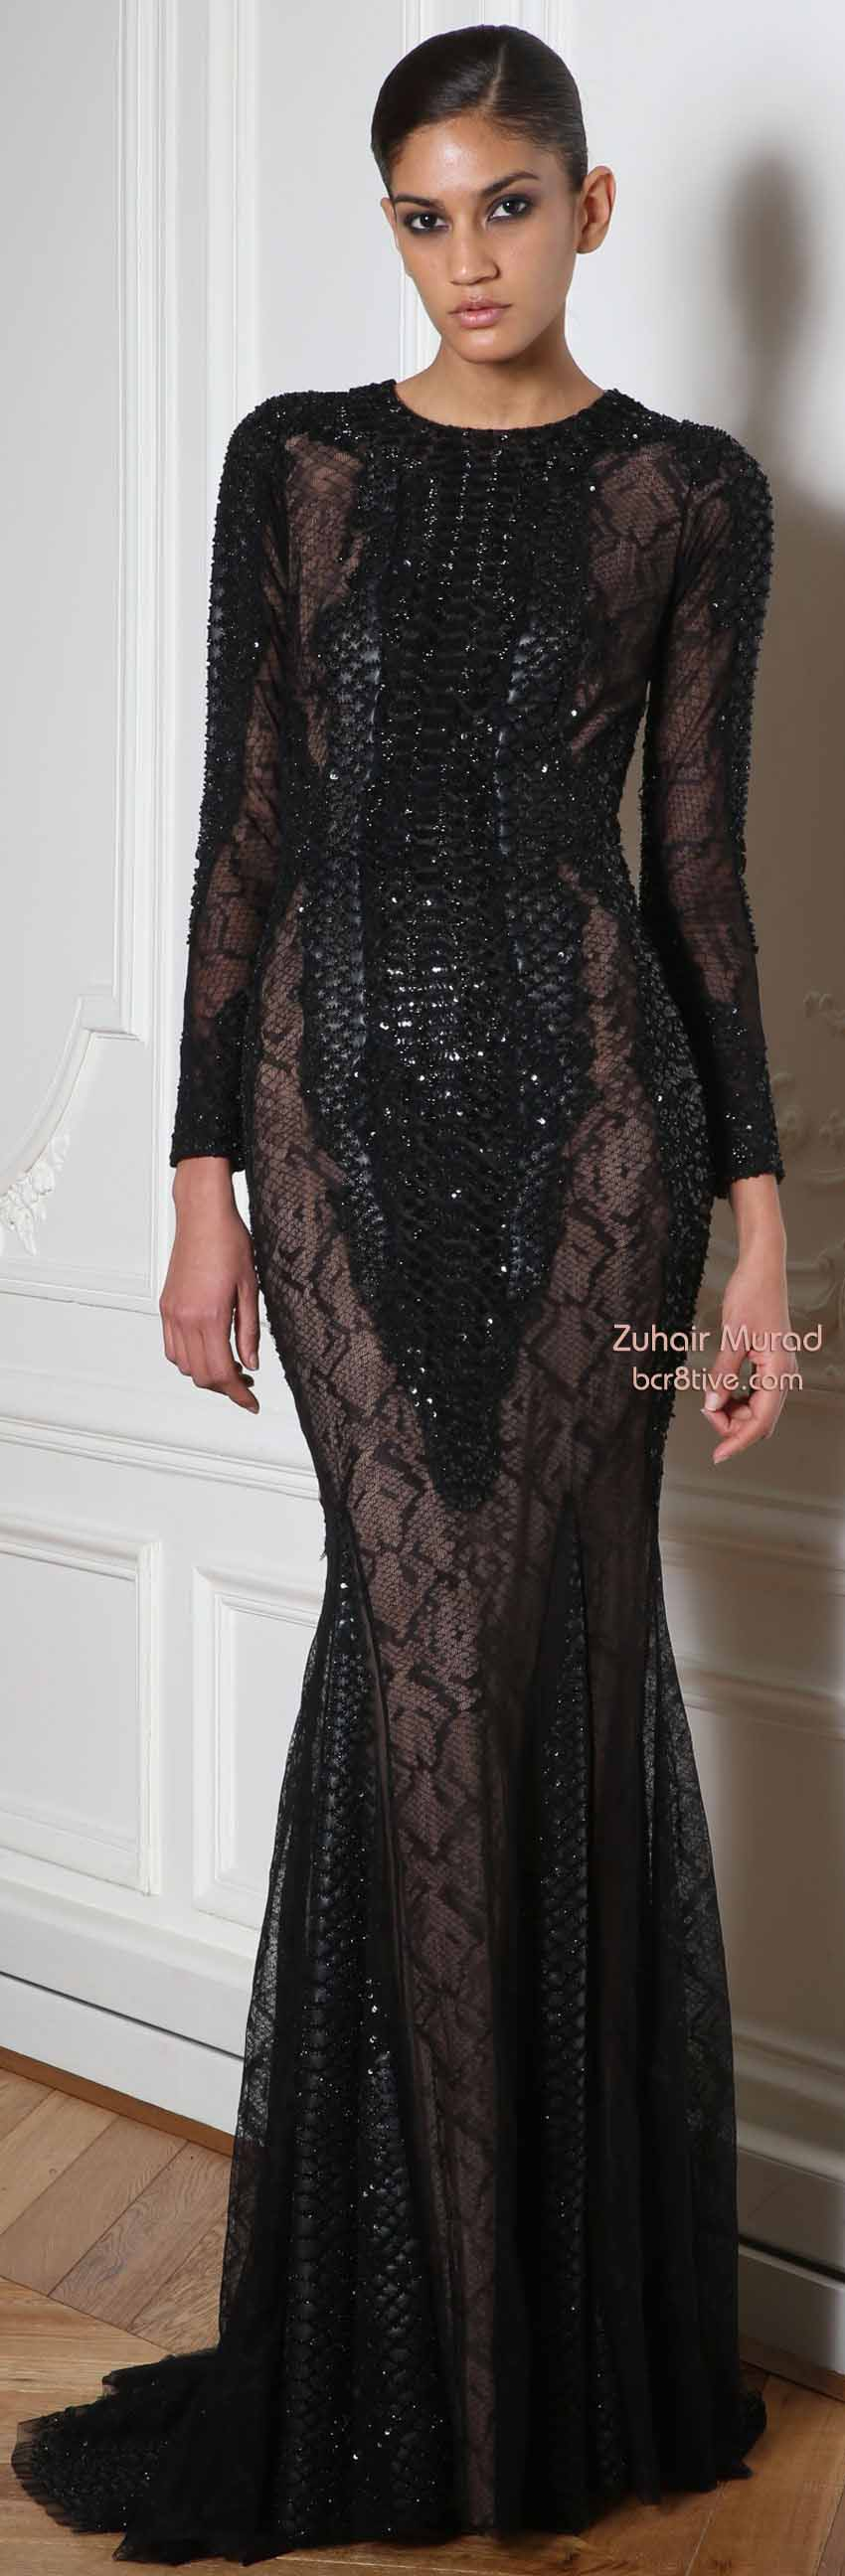 Zuhair Murad Fall Winter 2014-15 RTW